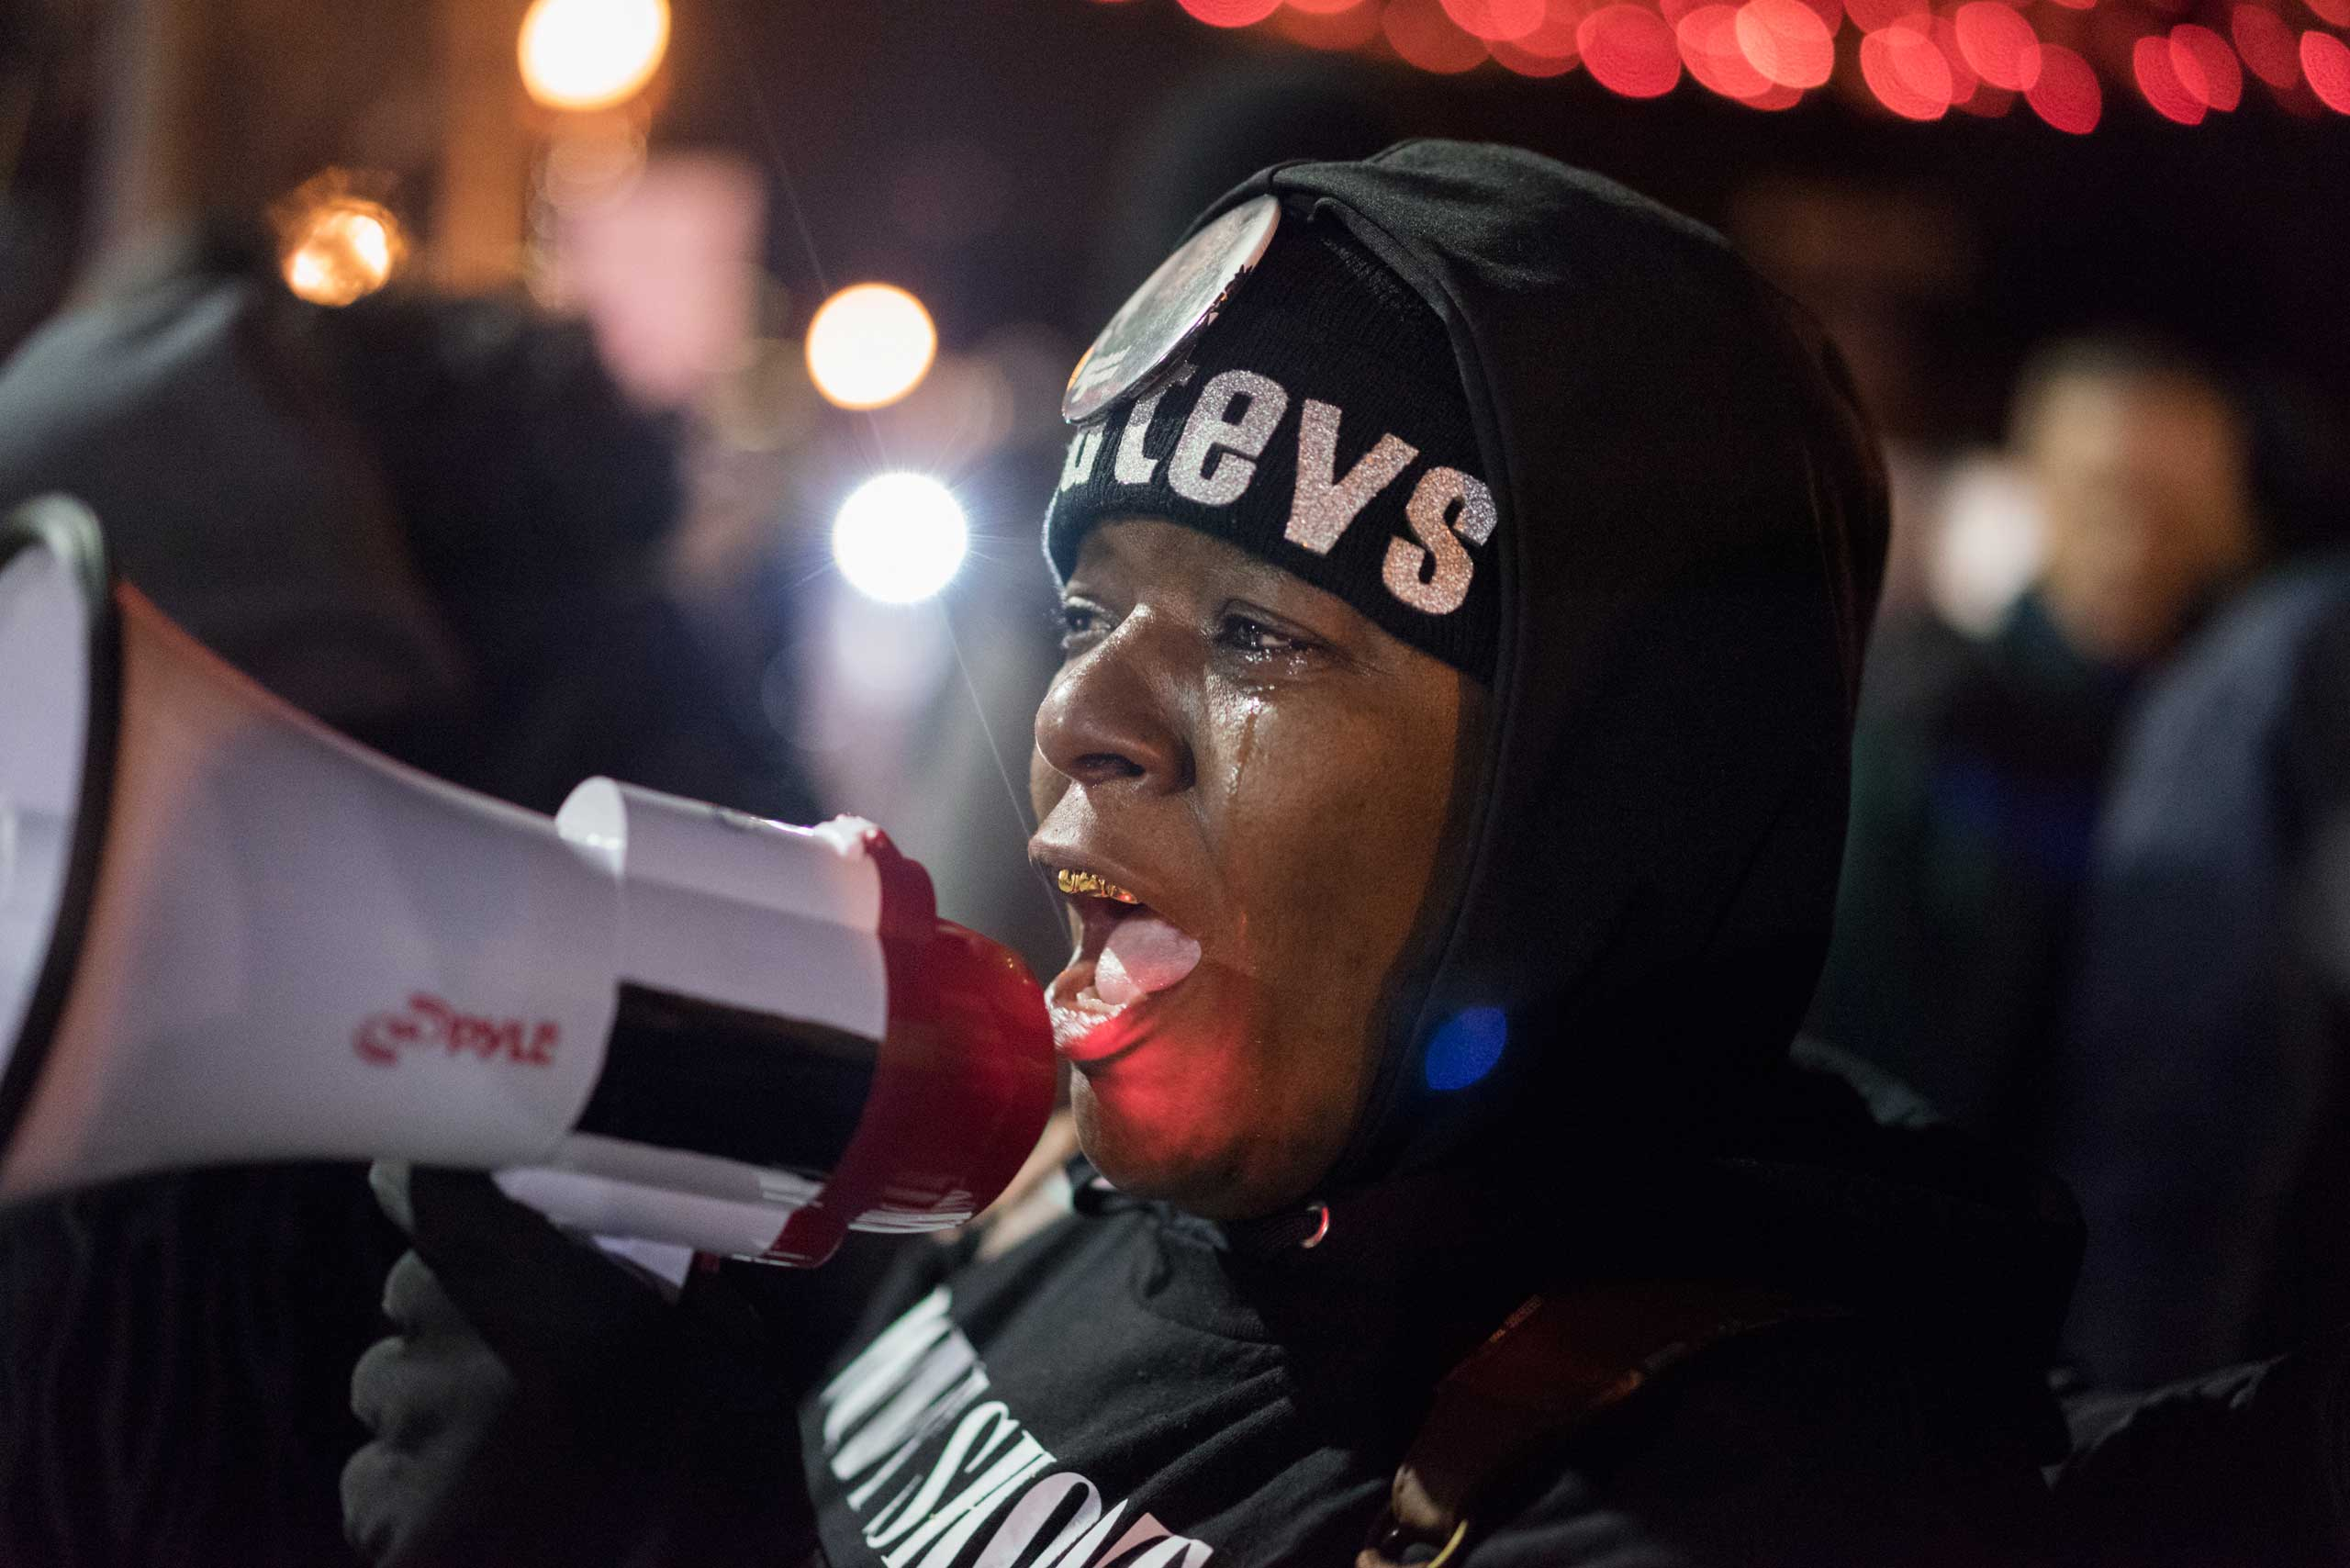 A woman speaks into a megaphone during protests in Ferguson, Mo. on Nov. 24, 2014